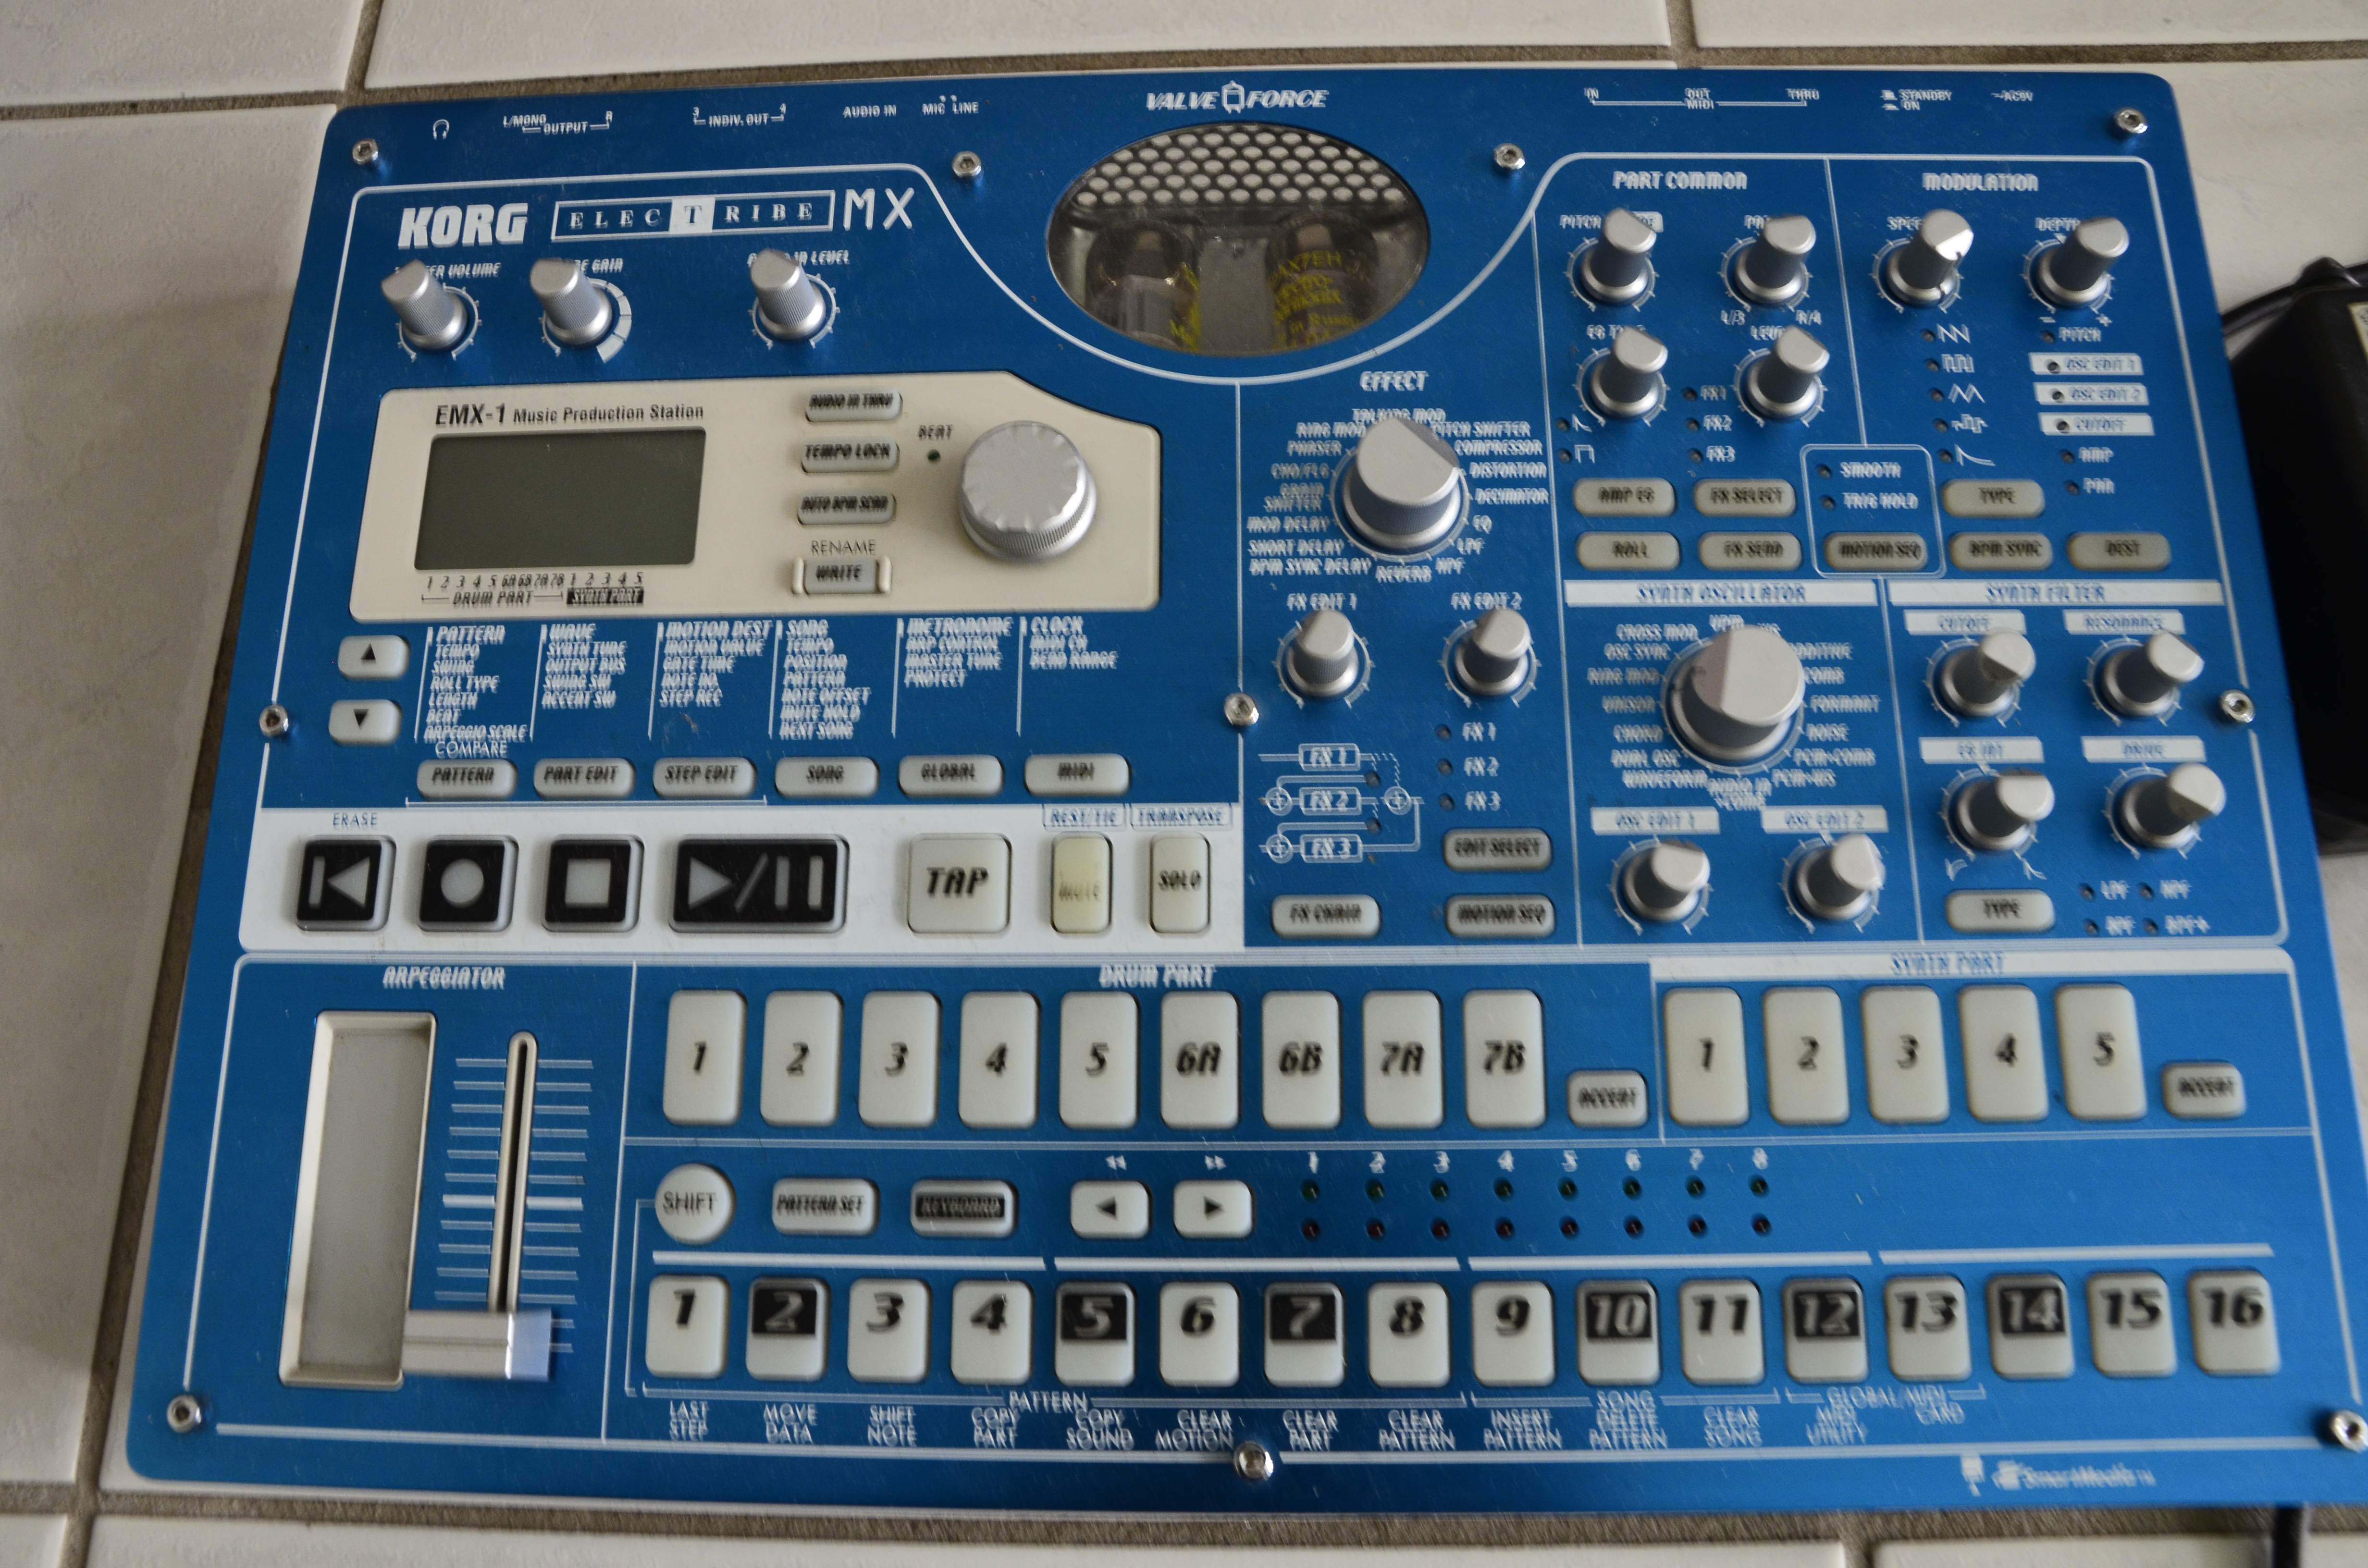 electribe emx 1 manual espaol ovexj korg ax1500g review korg ax1500g review